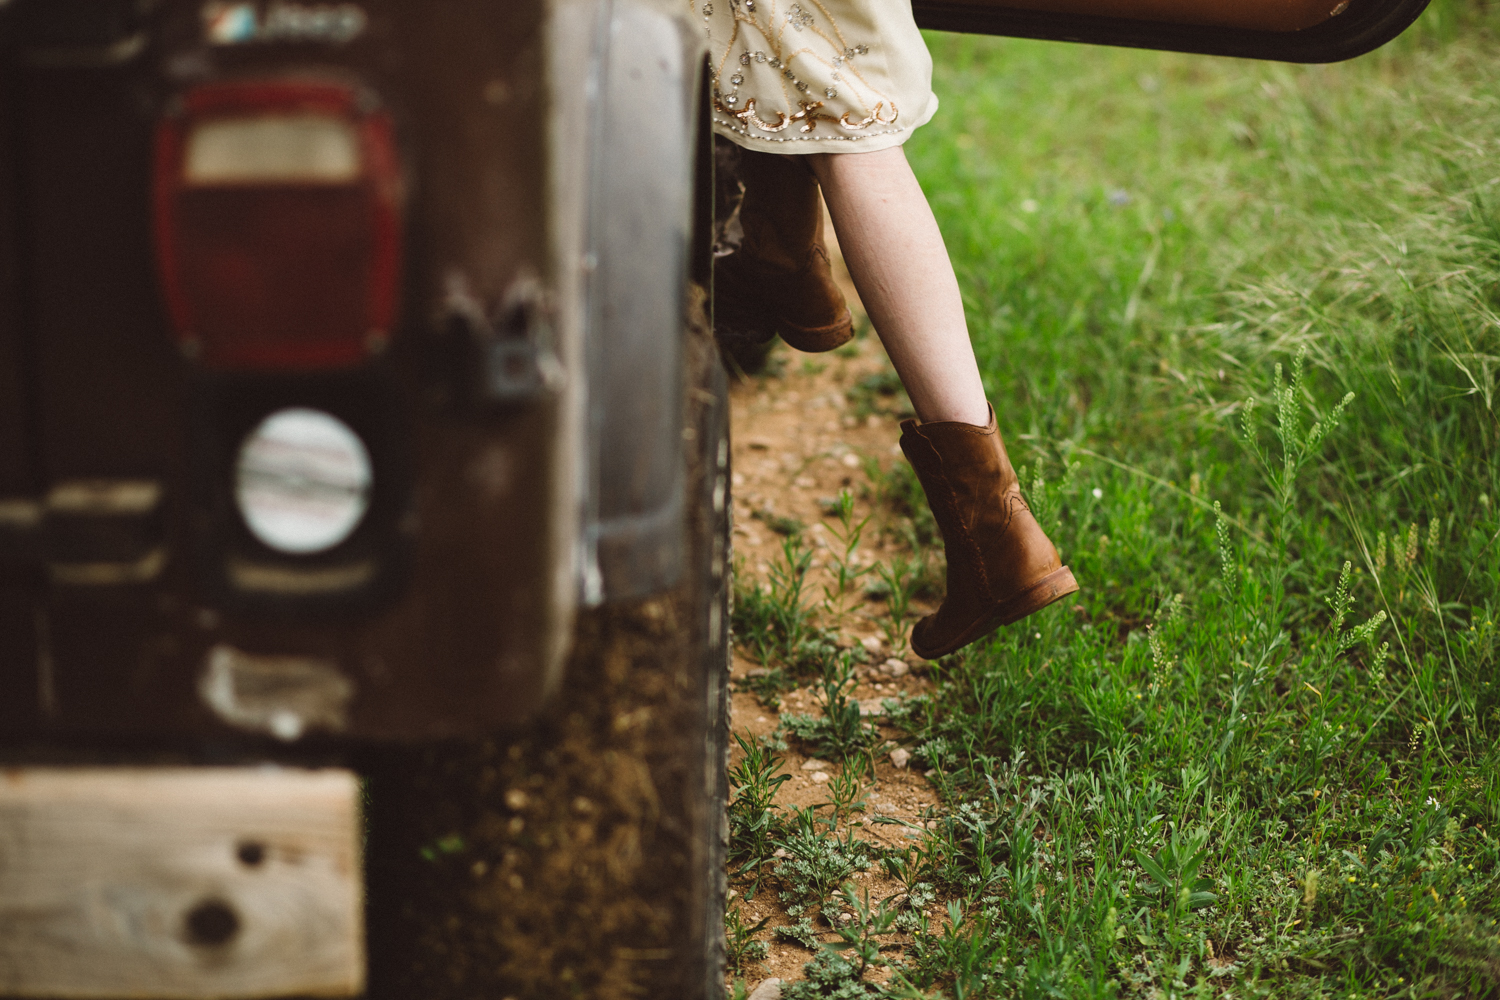 home ranch engagement session -kc-8.jpg